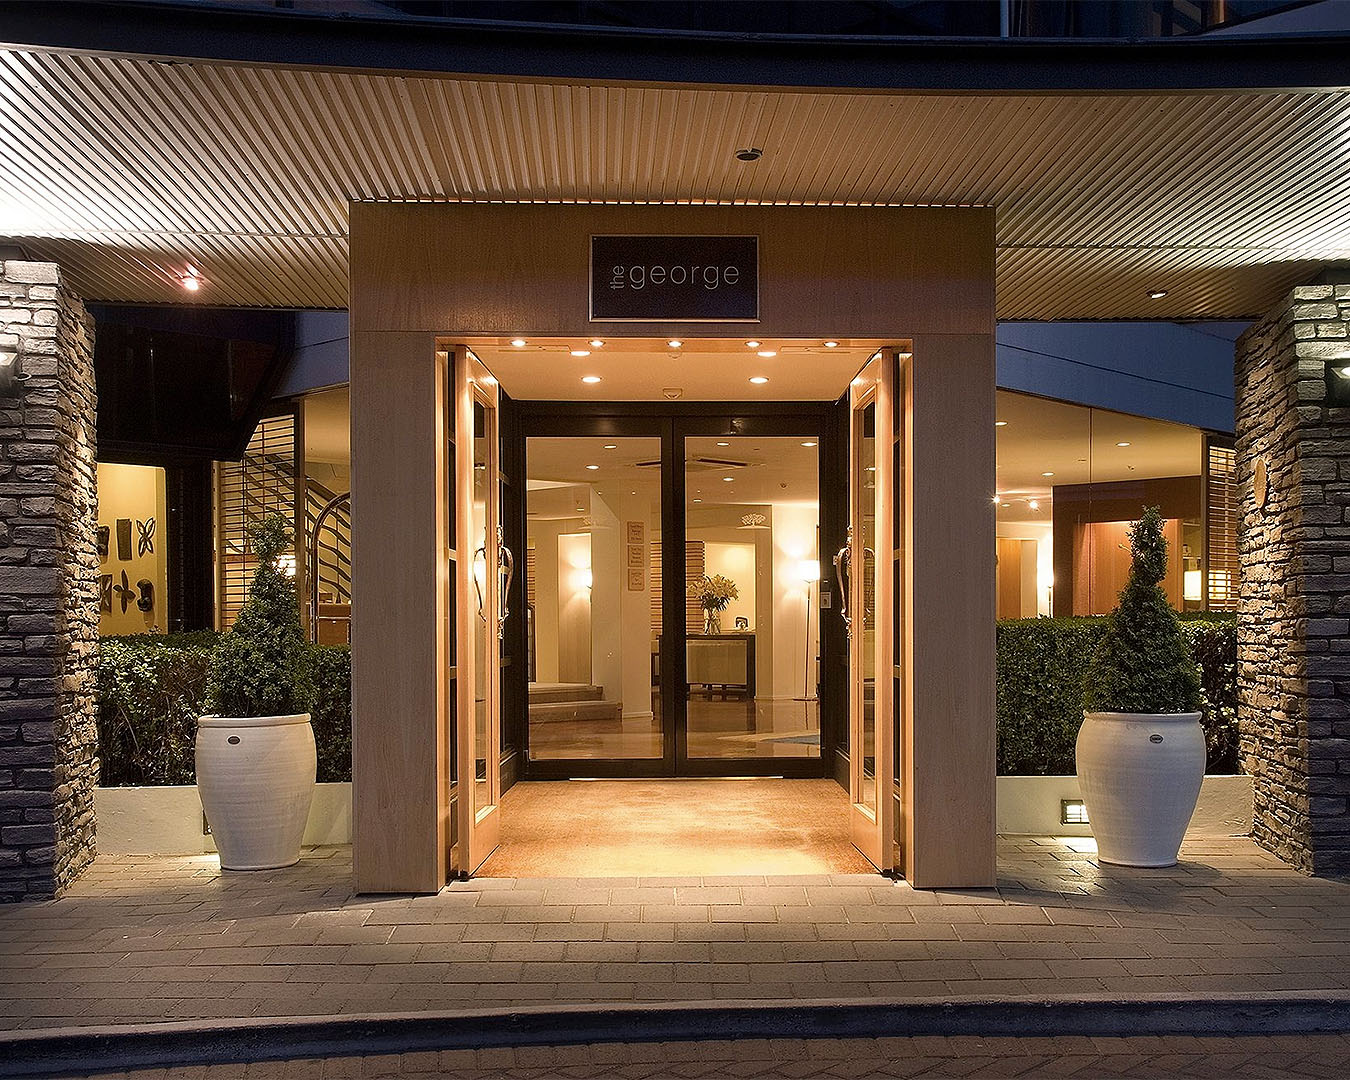 The entrance to The George Hotel in Christchurch.